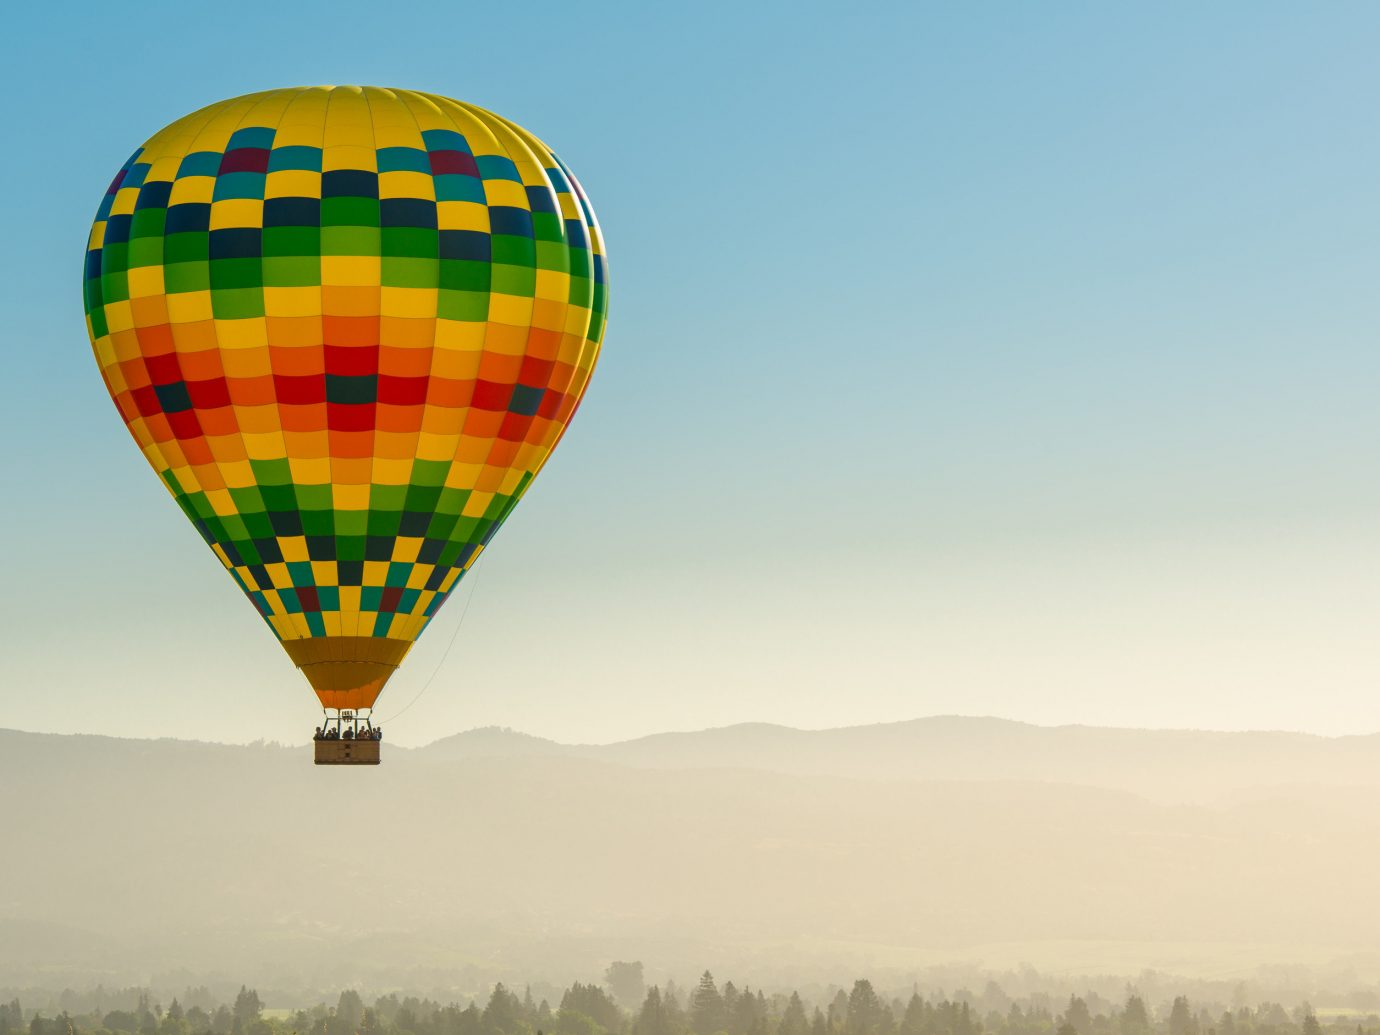 Food + Drink Girls Getaways Trip Ideas Weekend Getaways transport balloon sky aircraft outdoor hot air ballooning Hot Air Balloon vehicle atmosphere of earth toy colorful colored